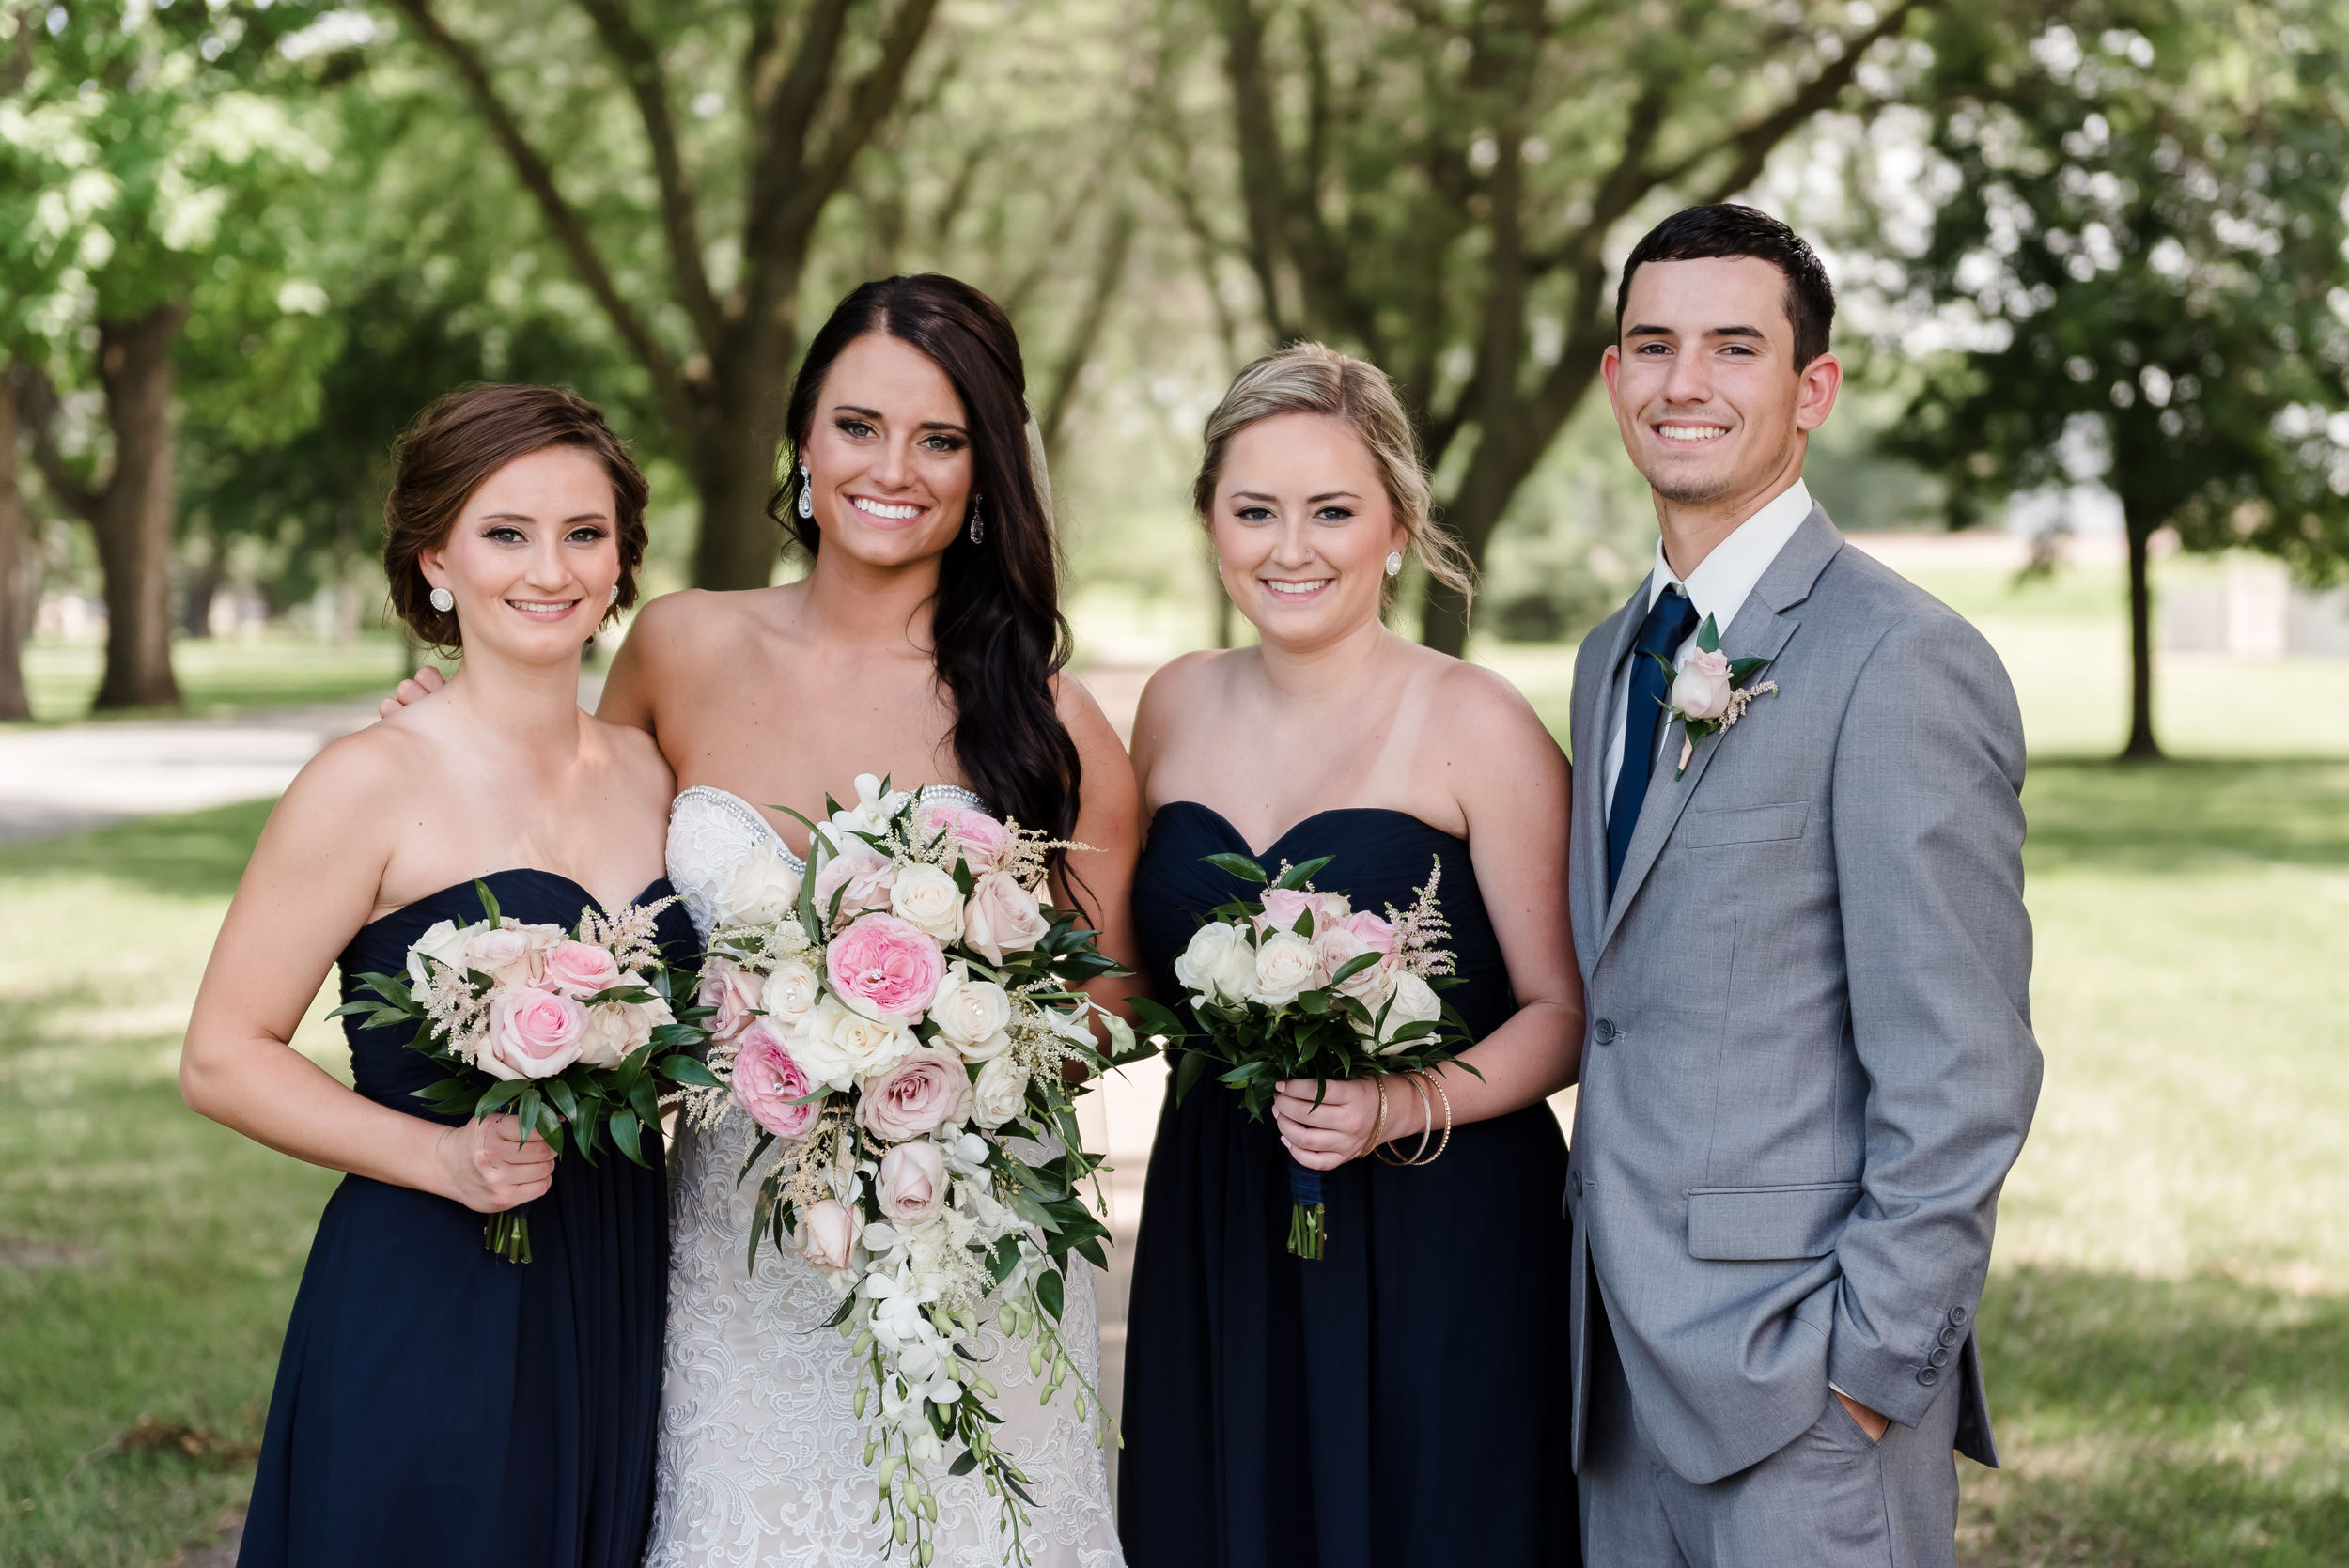 Layce and Brandon - Wedding - Bridal Party and Family - Outdoor Portraits-32.jpg